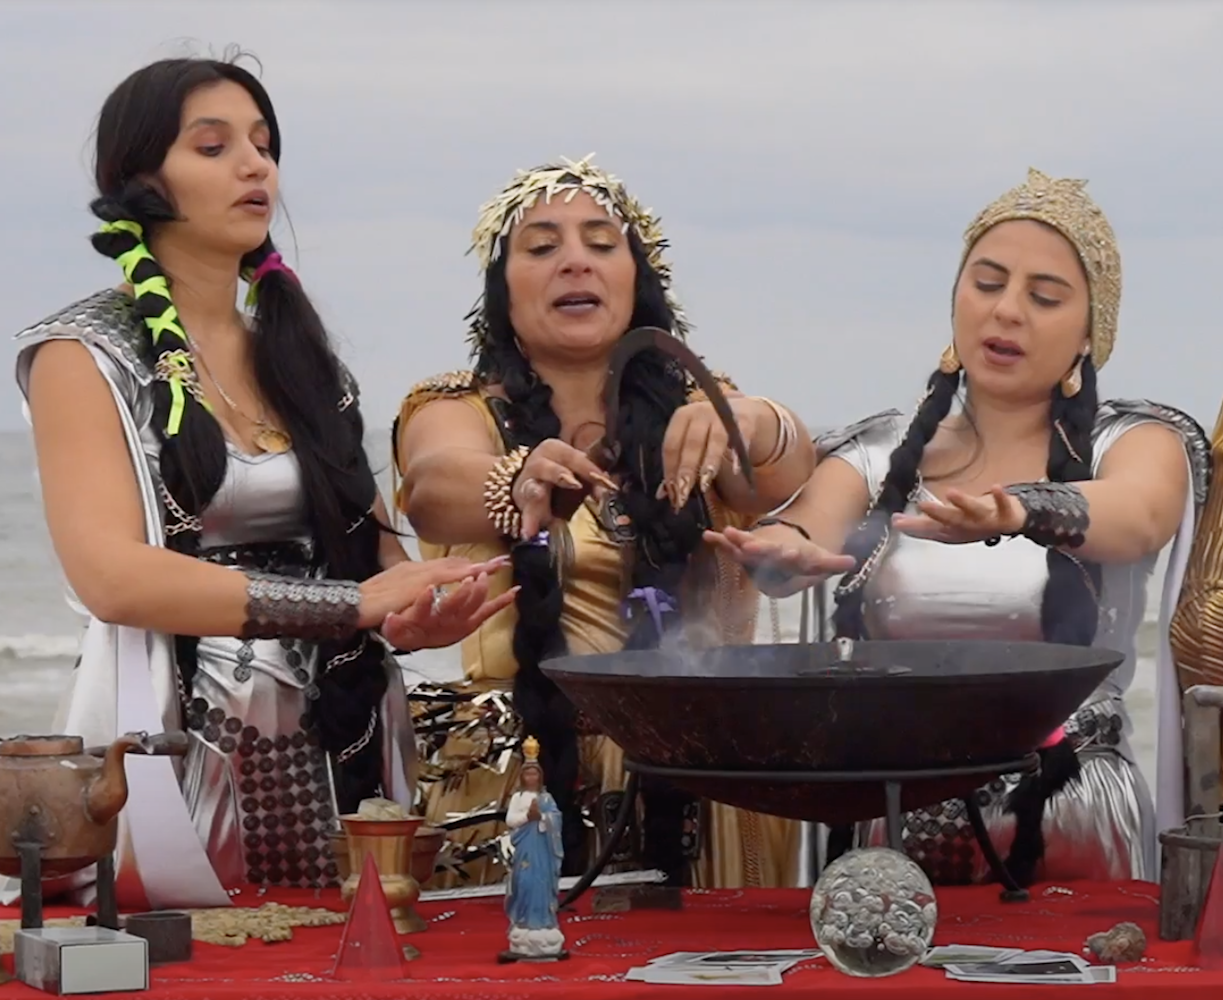 Roma witches against racism: watch ritual spells intended to heal historical trauma online